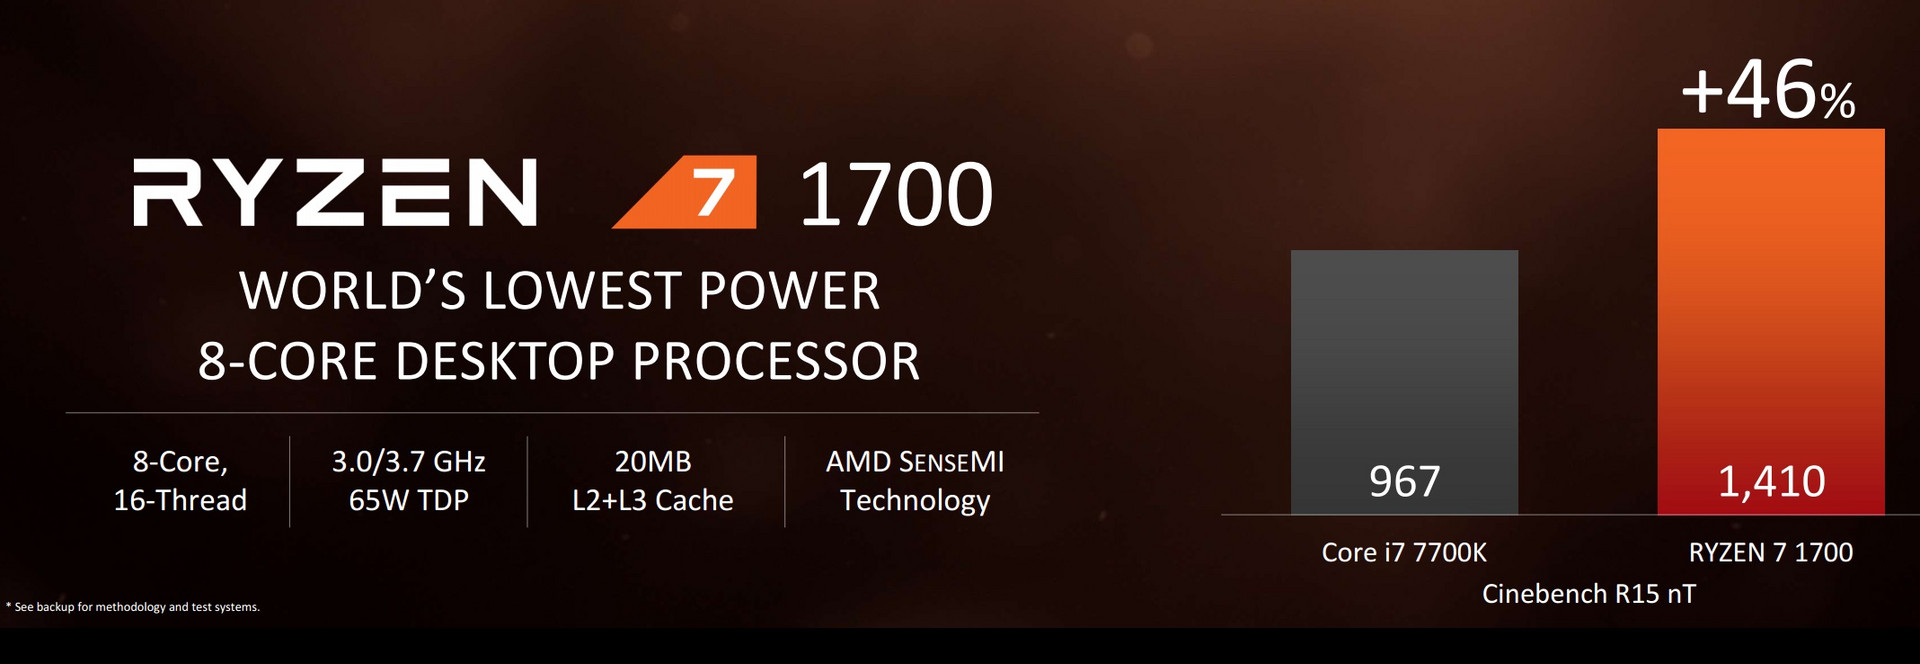 Amd Ryzen Lineup Officially Released With Full Specs And Pricing